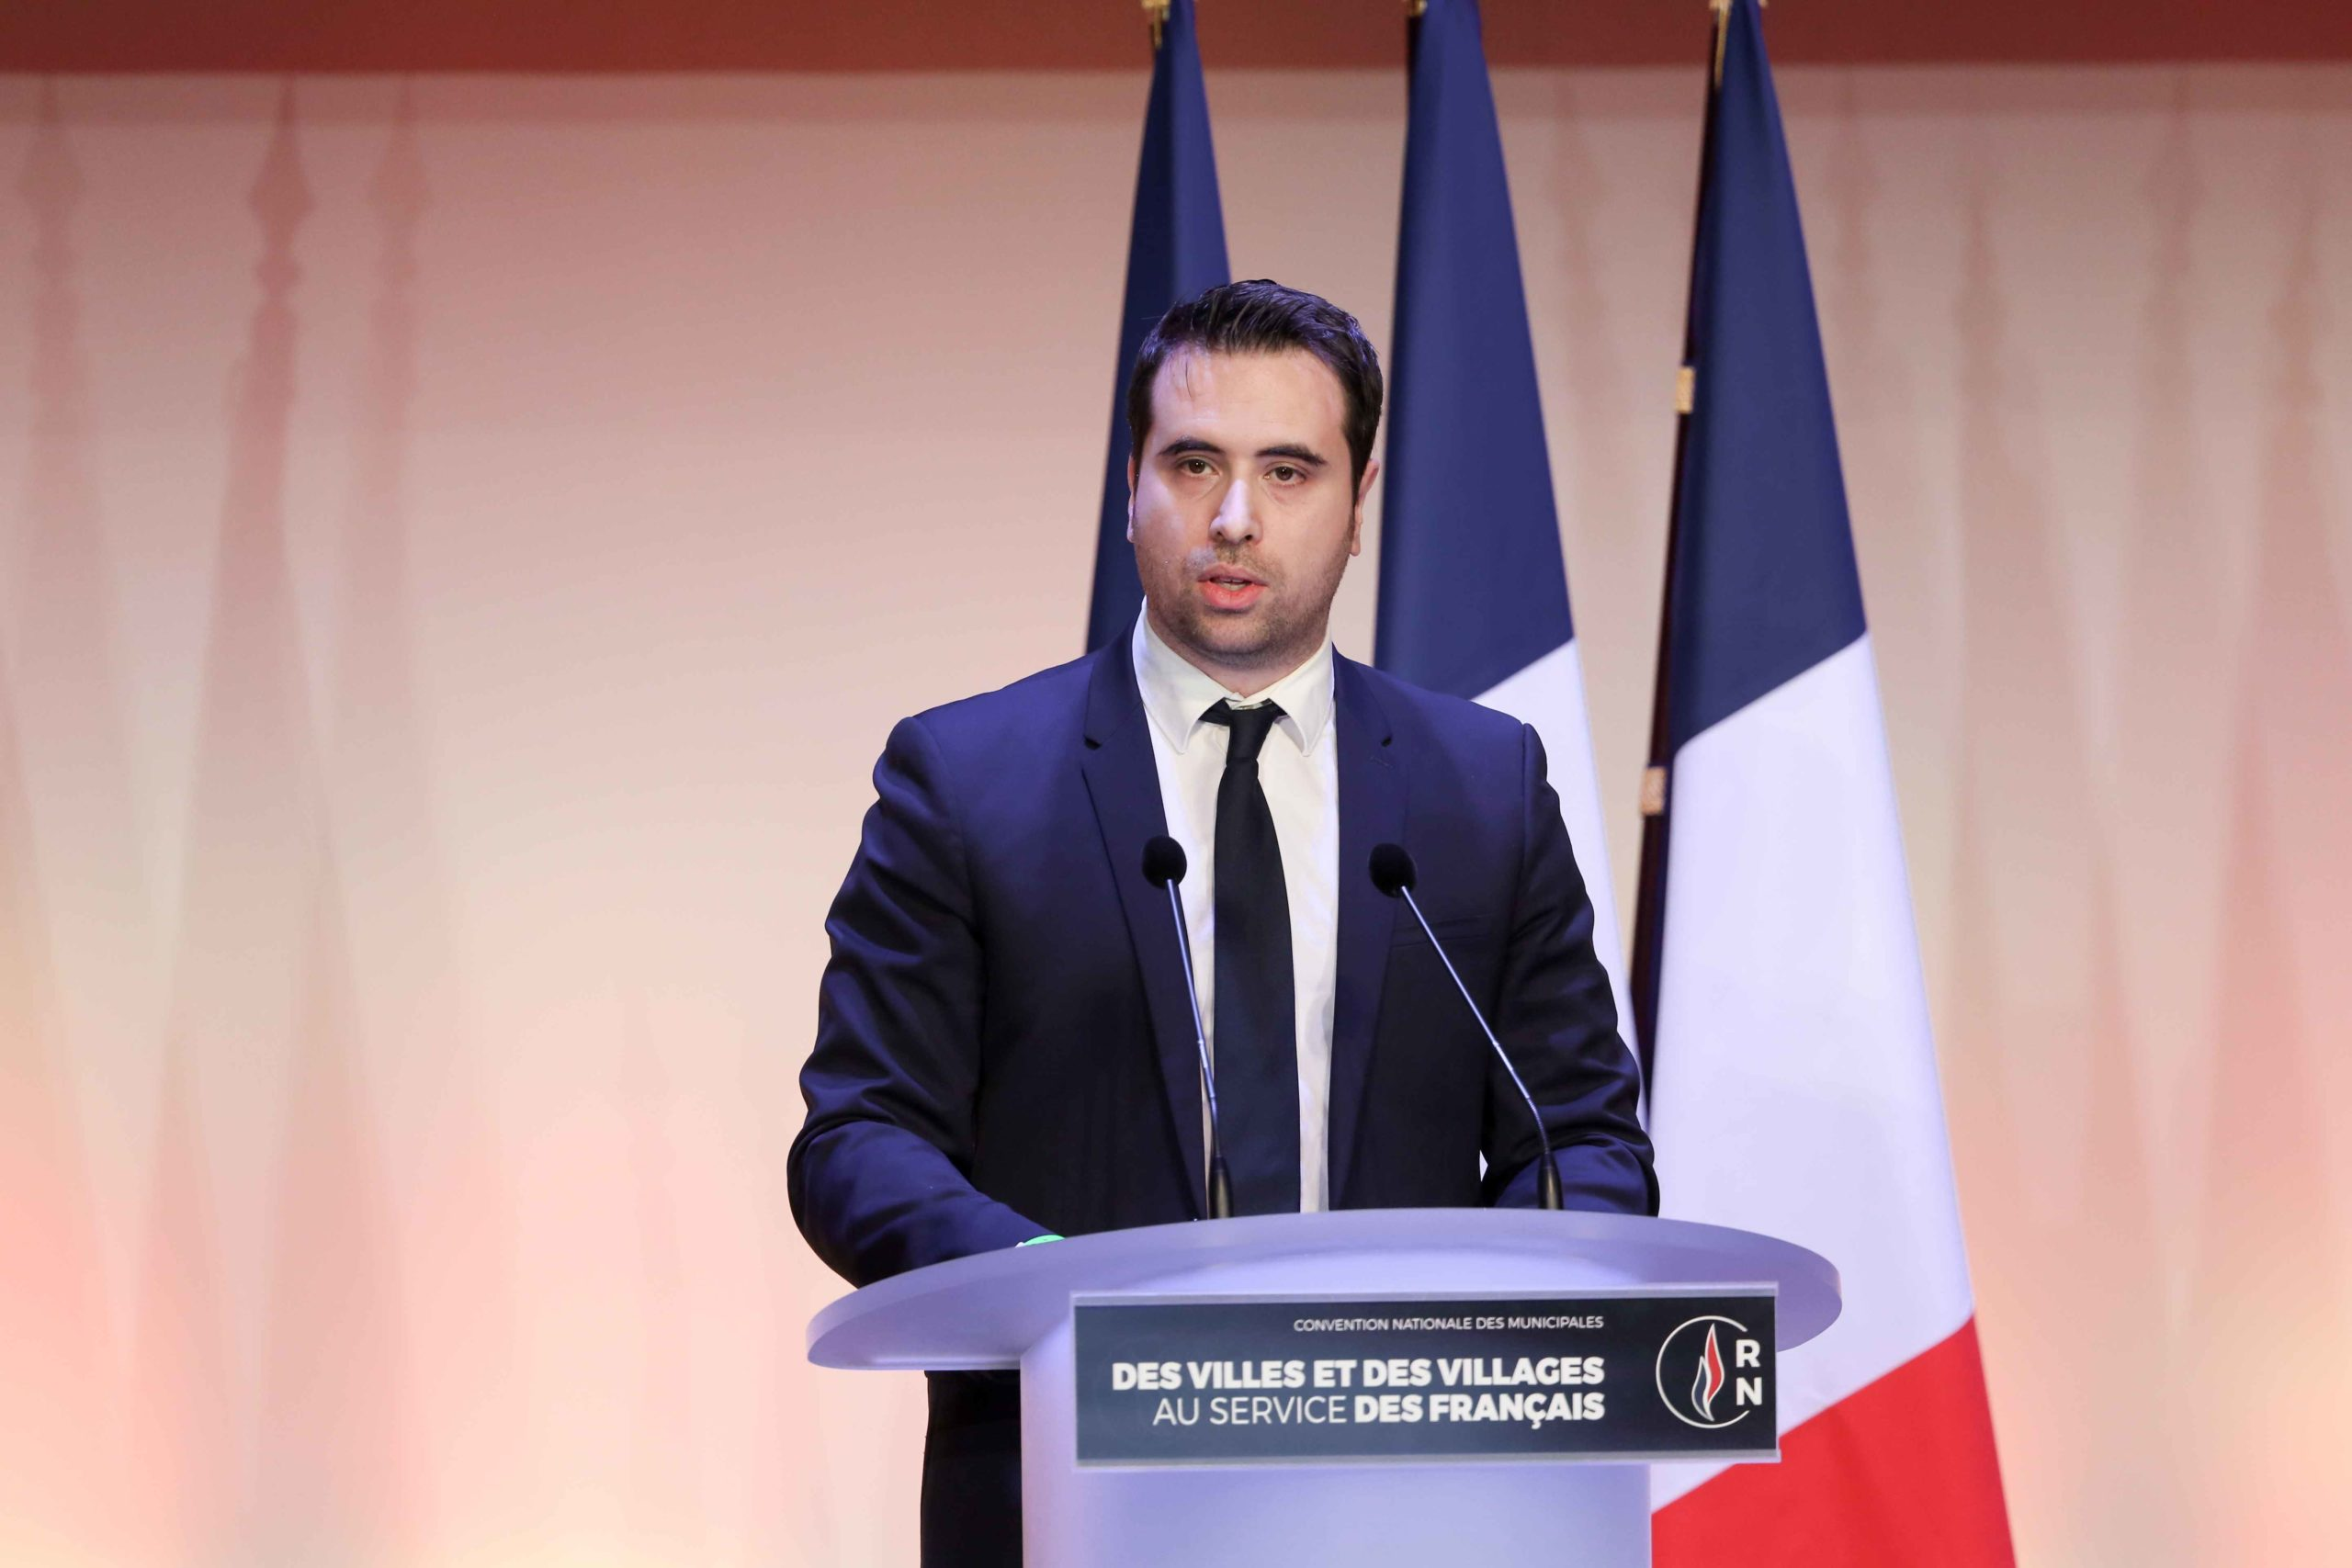 Aymeric Durox, the Rassemblement national (RN) candidate in the forthcoming mayoral election in Nangis (Seine-et-Marne), speaks in Paris, on January 12, 2020, during a meeting to launch the RN campaign candidates for the next municipal elections.  The 2020